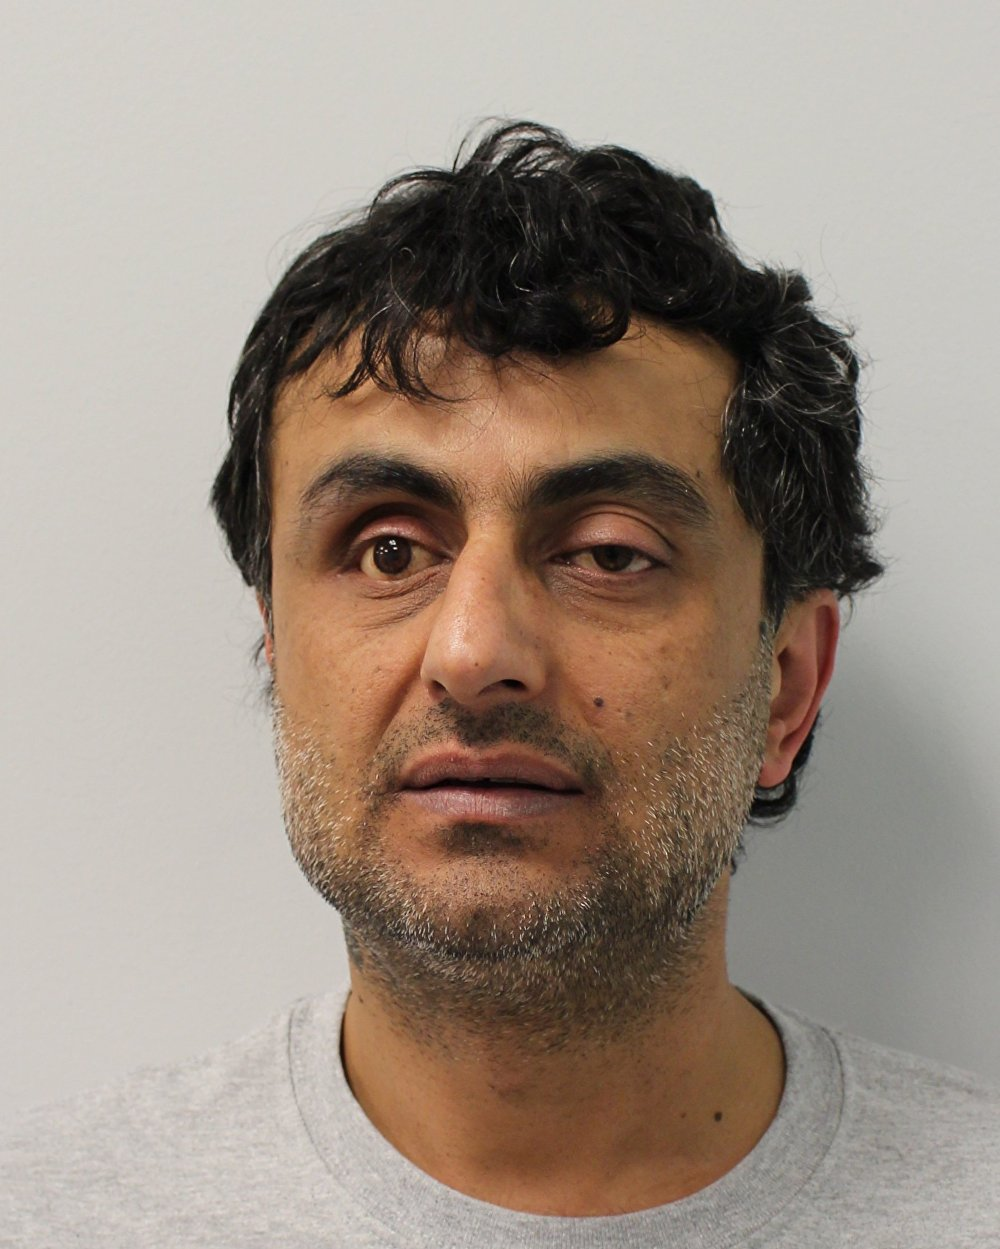 Rahim Mohammadi (pictured) was an asylum seeker from Iran who spent much of his time smoking opium in his shed